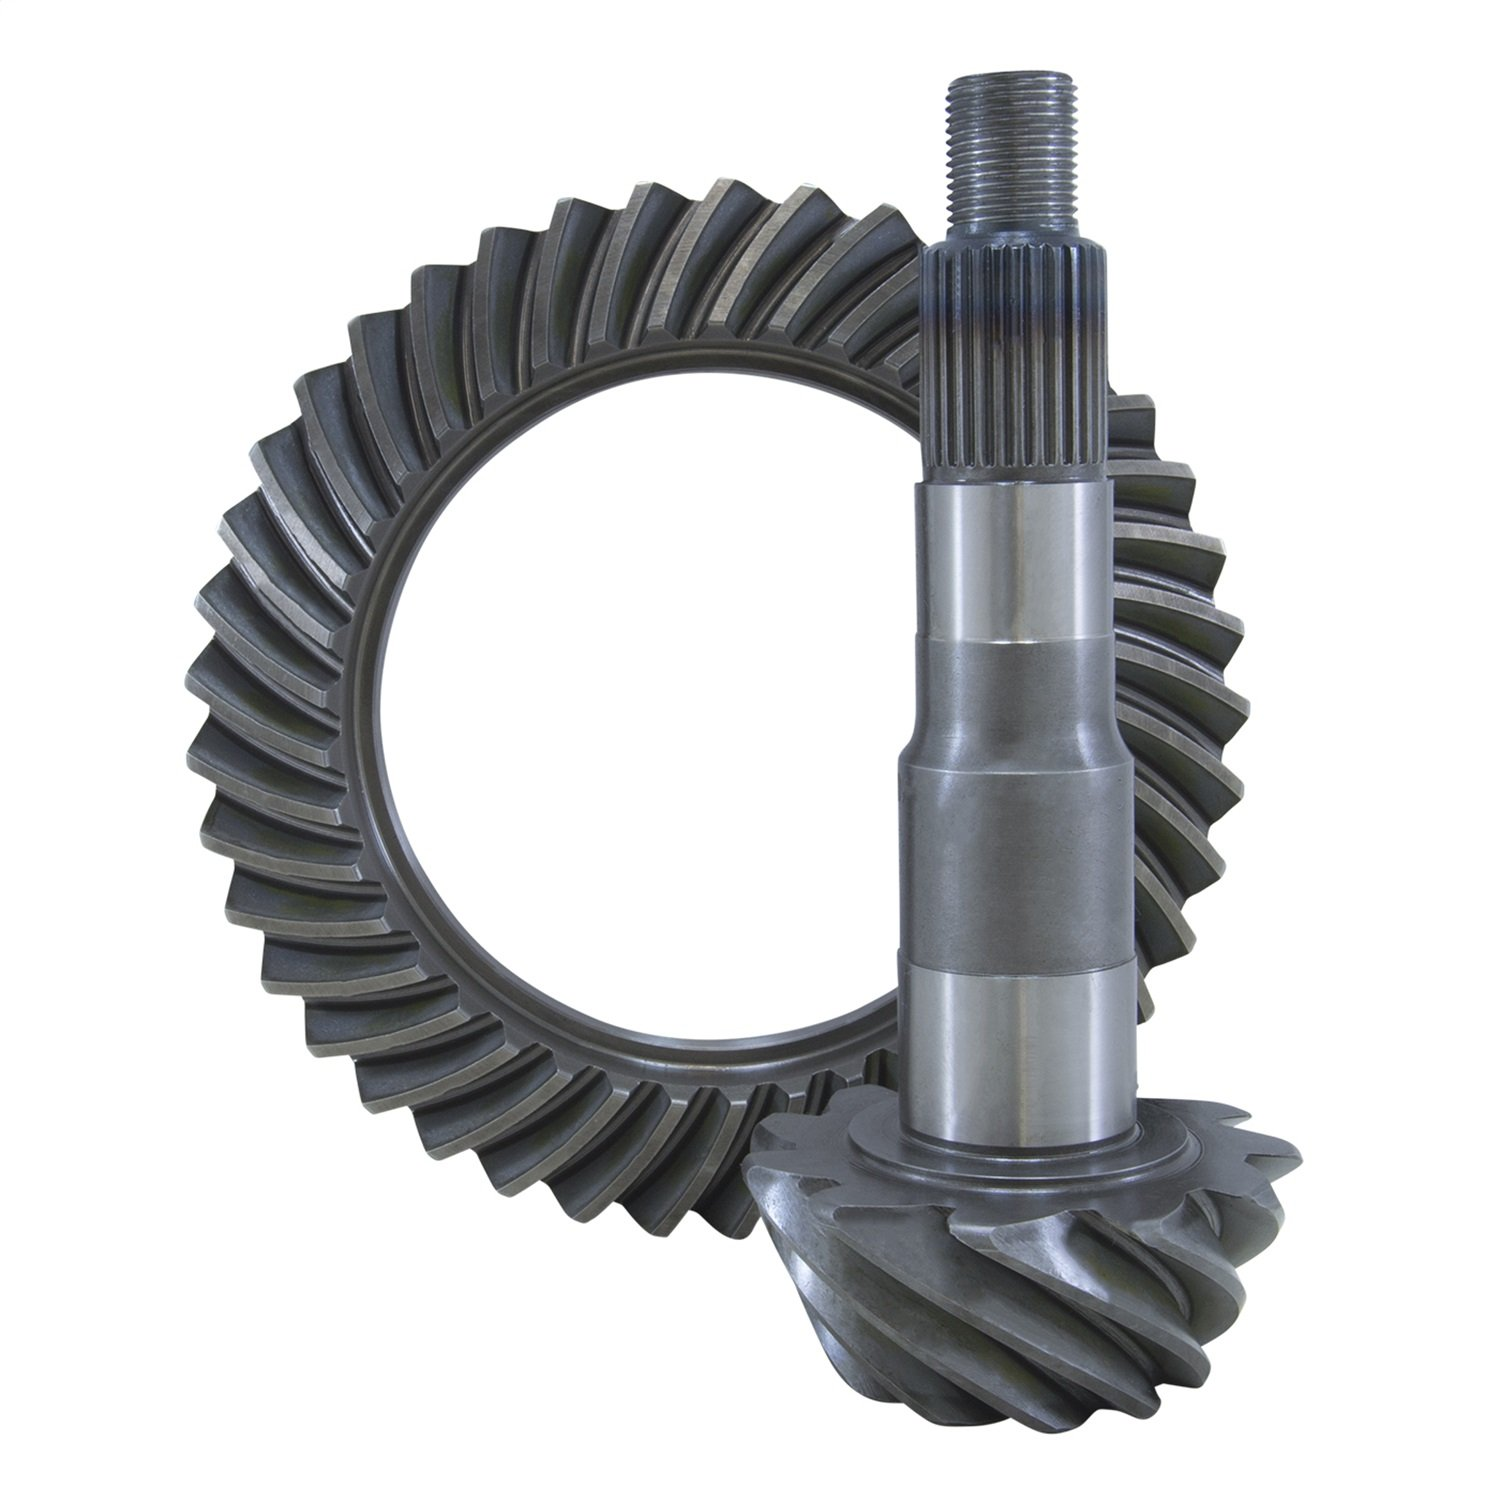 Yukon Gear /& Axle High Performance Ring /& Pinion Gear Set for Suzuki Samurai Differential YG SUZSAM-457